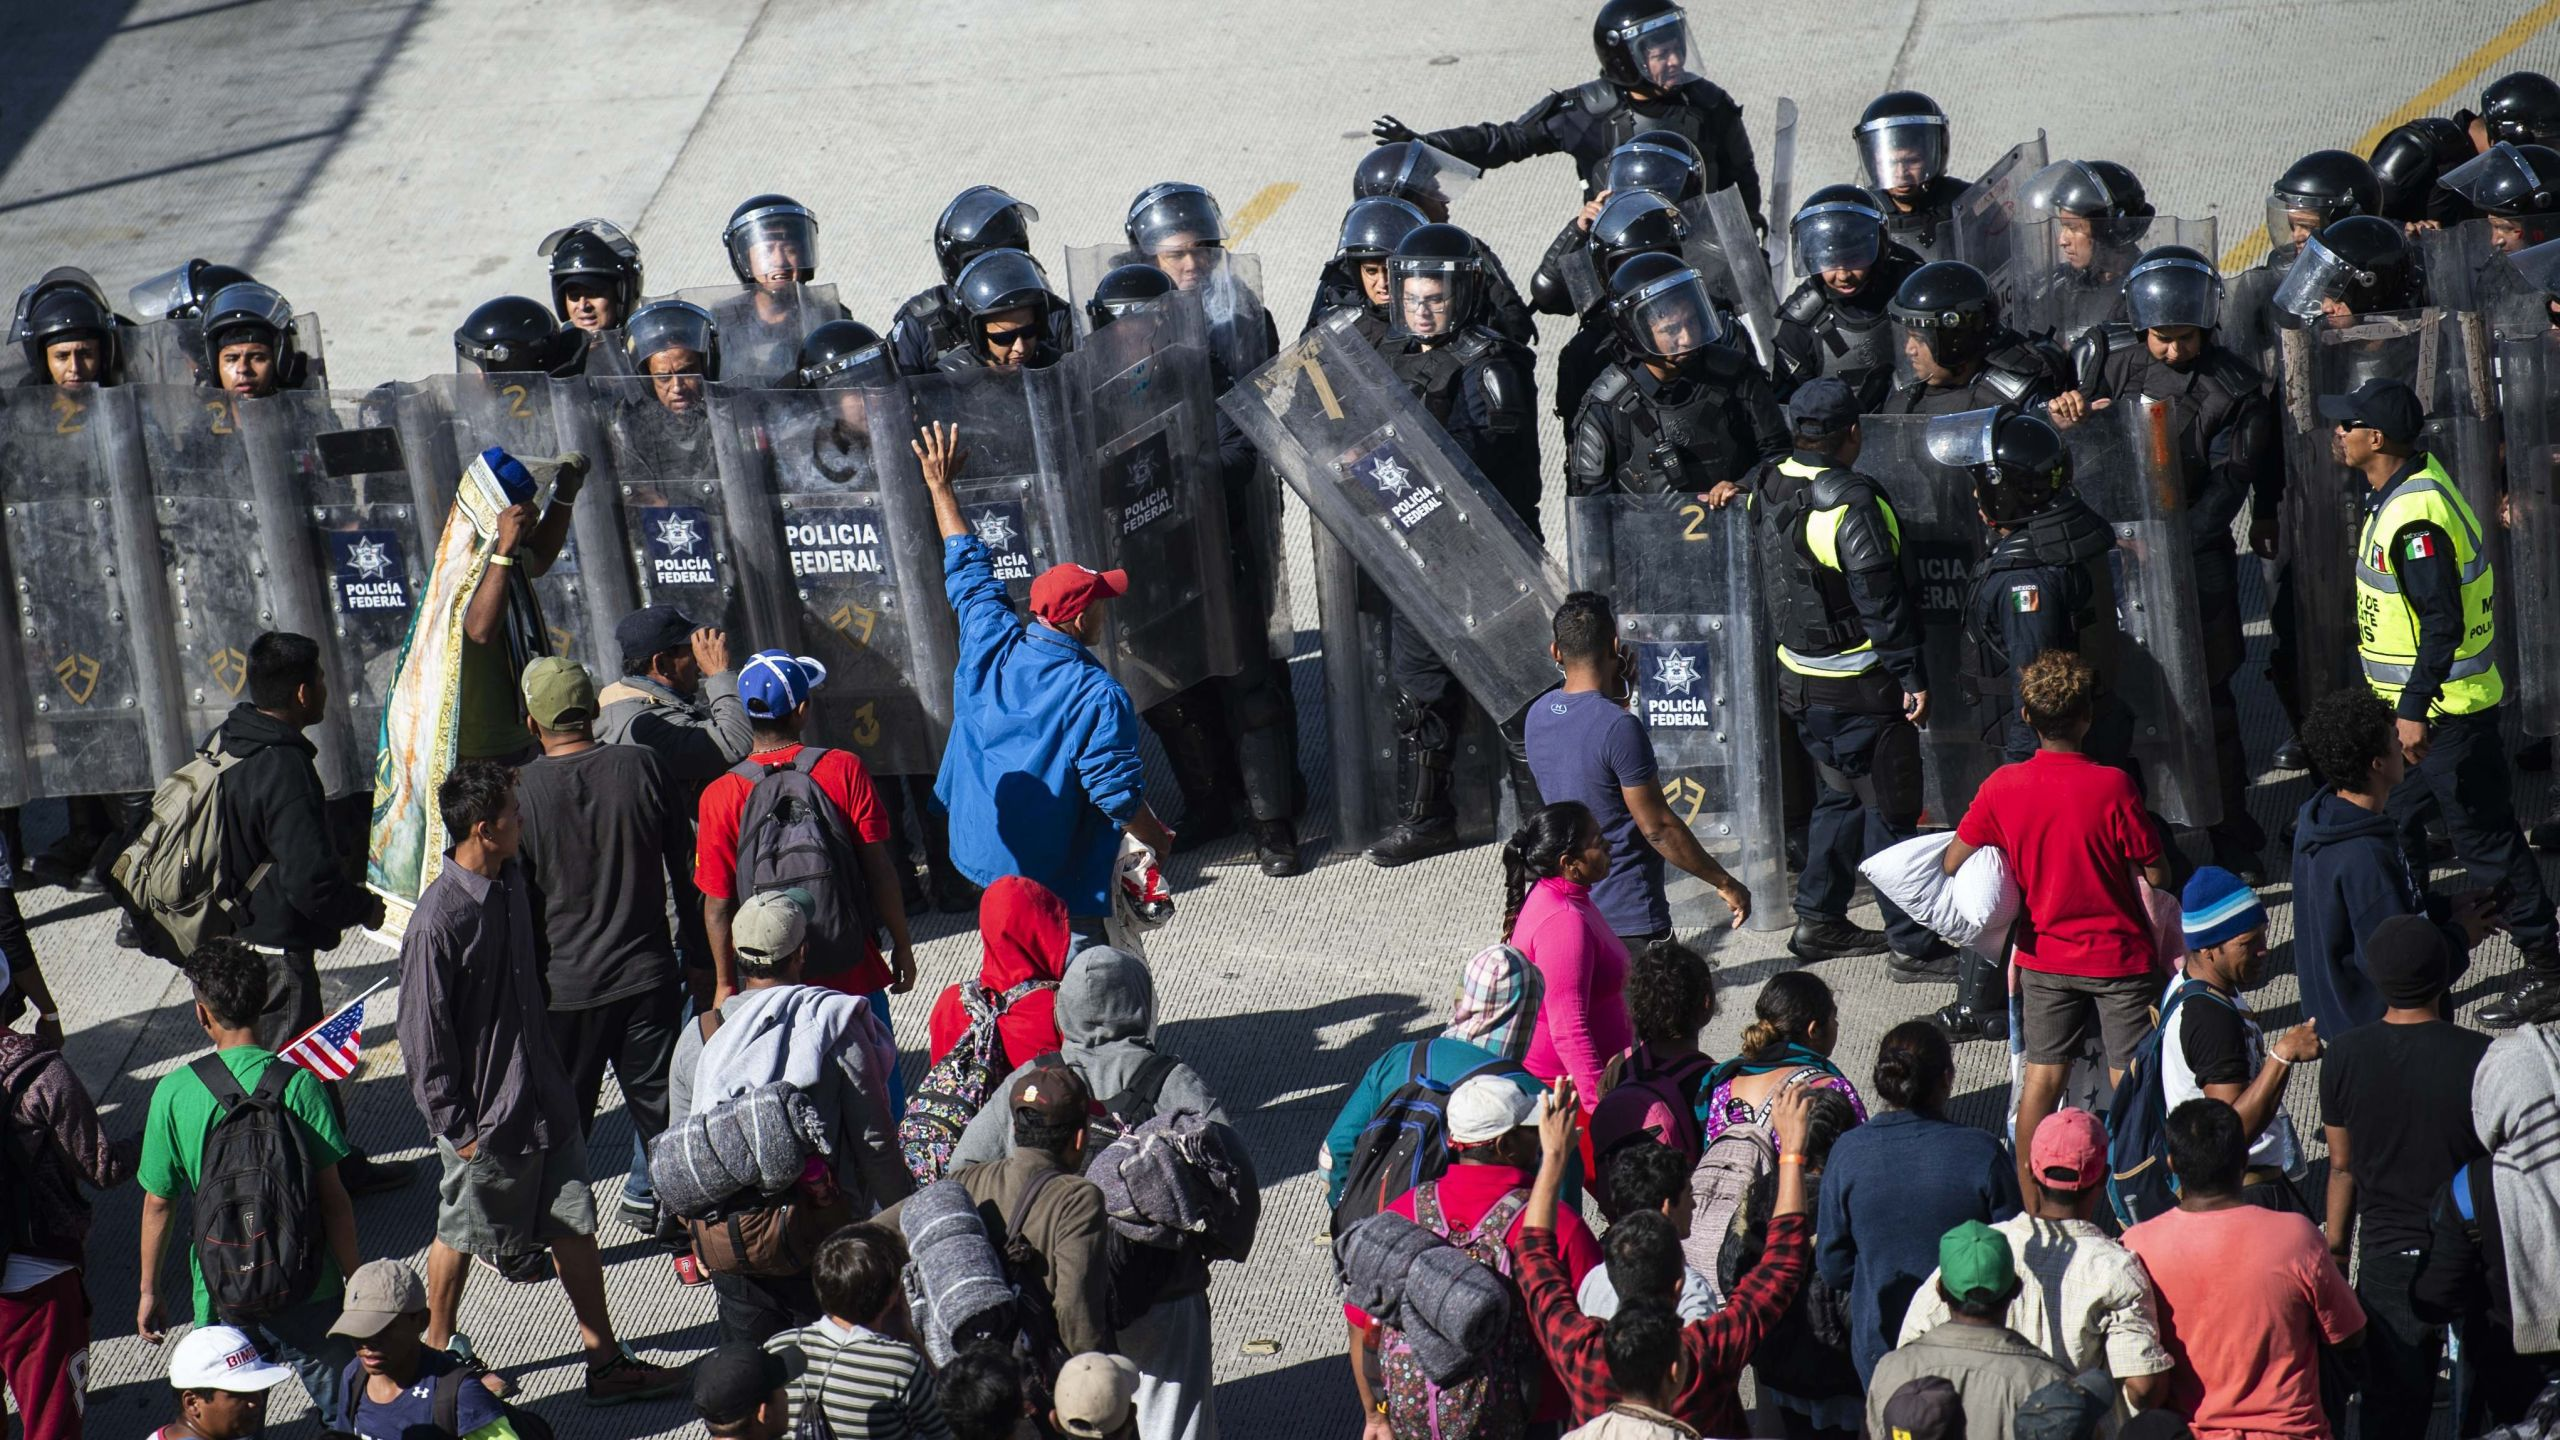 Central American migrants -mostly Hondurans- are blocked by Mexican police forces as they reach the El Chaparral border crossing, in Tijuana, Baja California State, Mexico, on November 25, 2018.